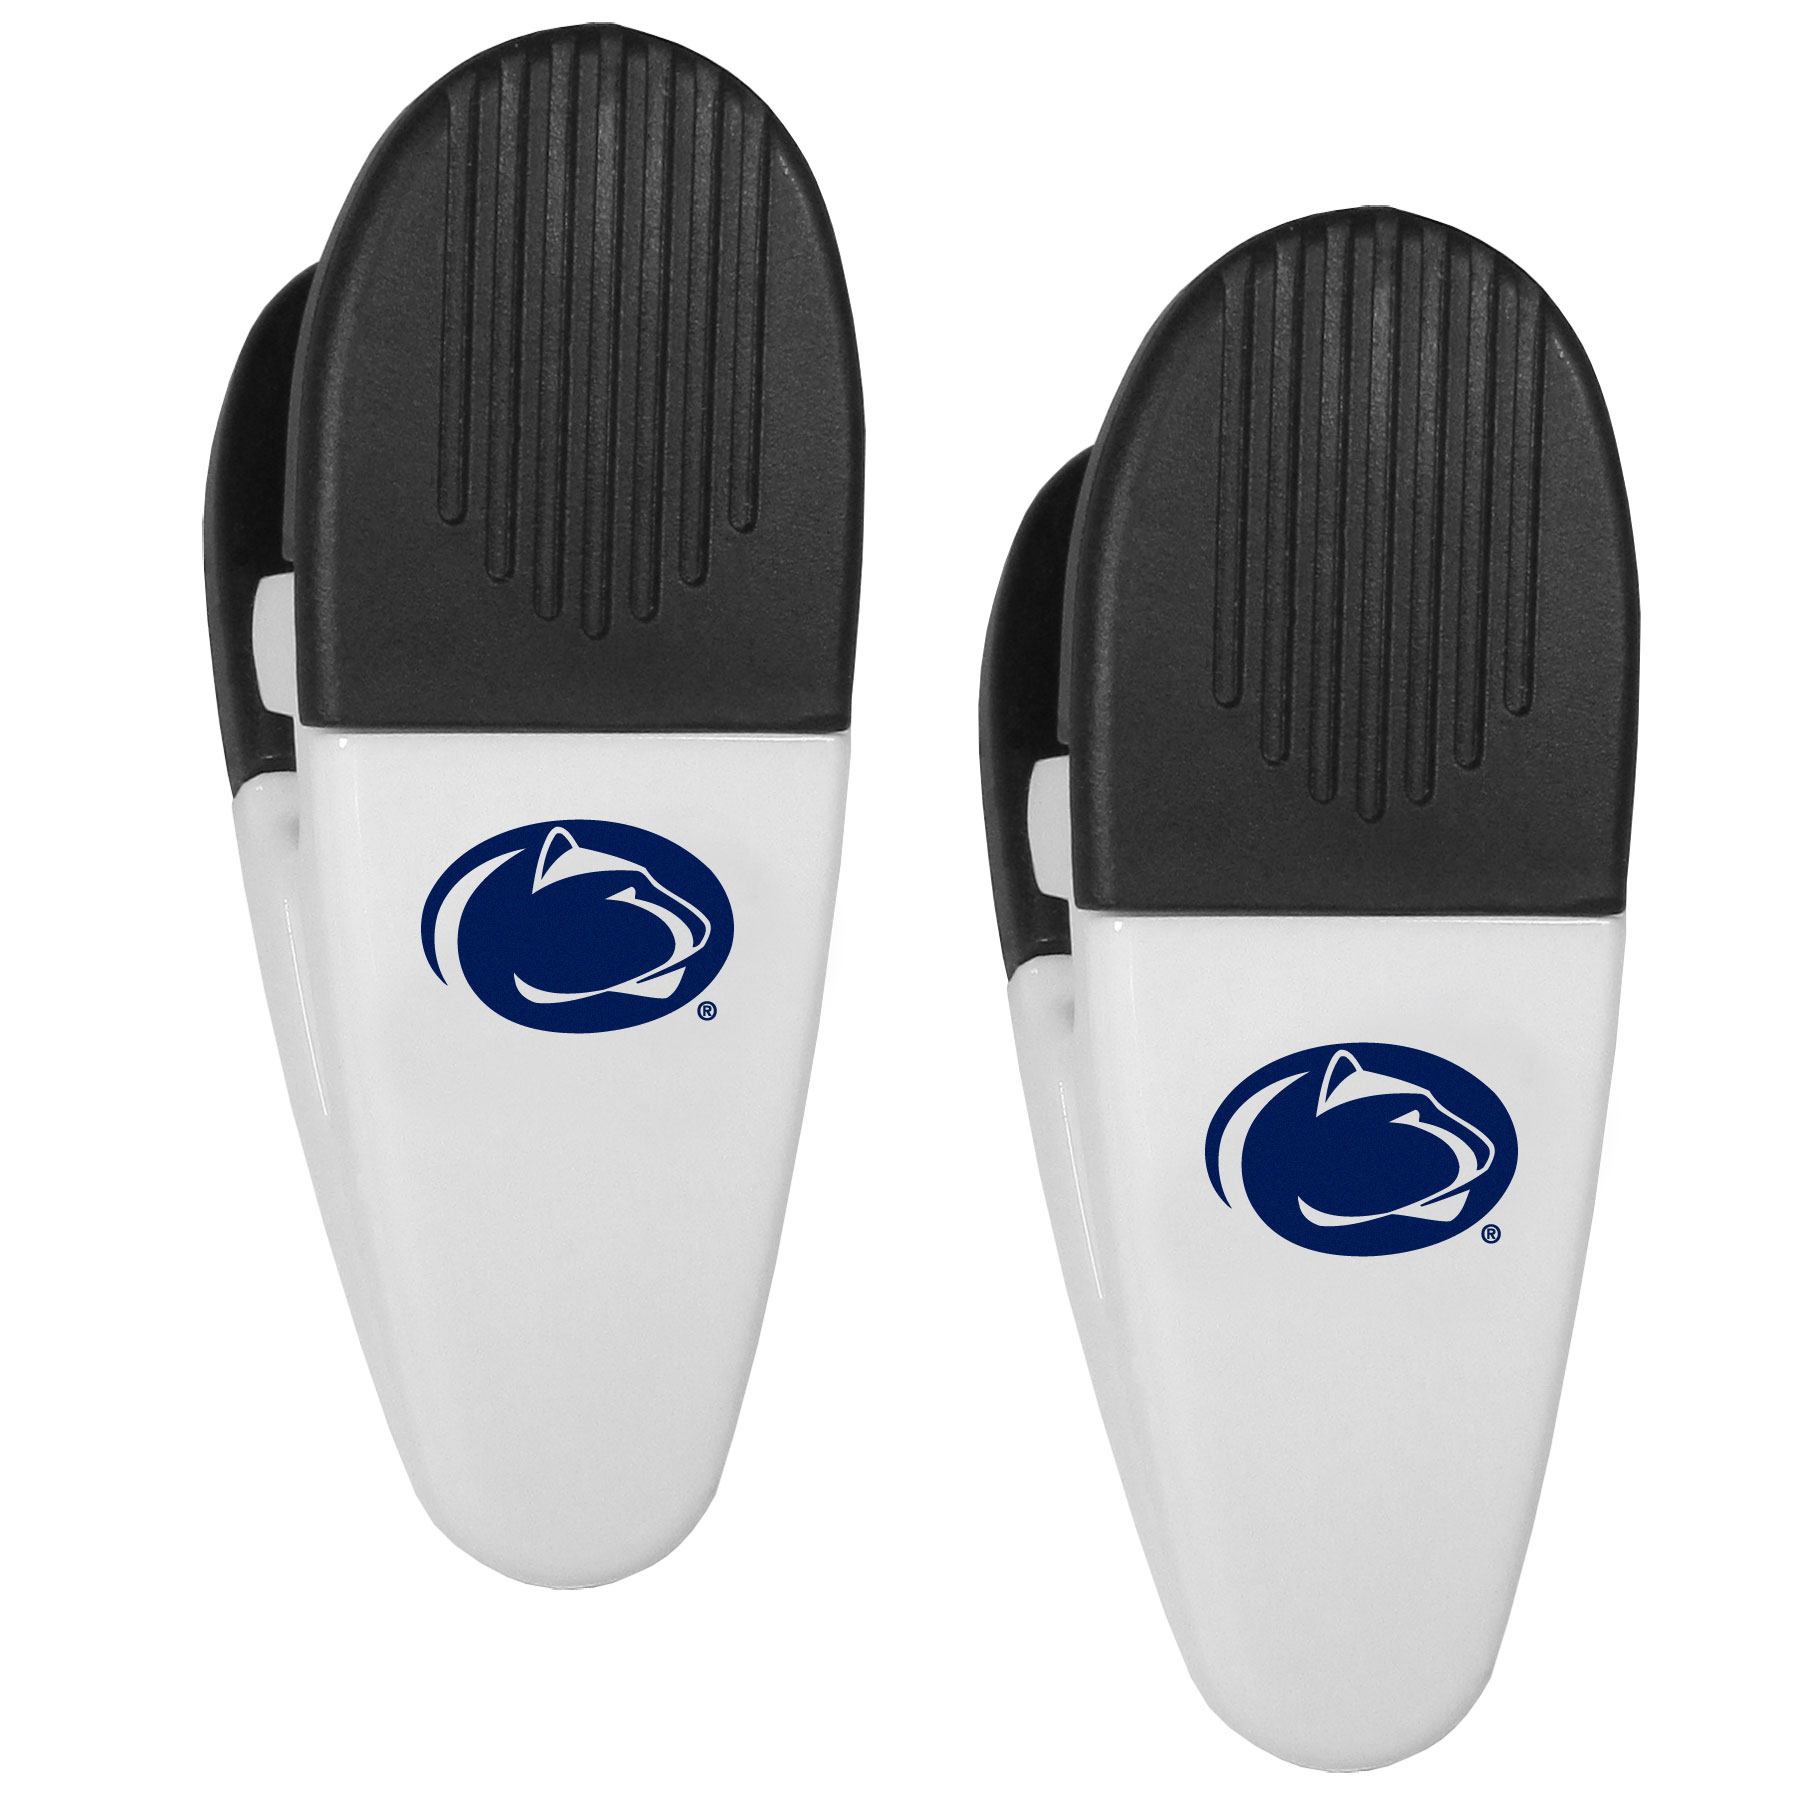 Penn St. Nittany Lions Mini Chip Clip Magnets, 2 pk - Our Penn St. Nittany Lions chip clip magnets feature a crisp team logo on the front of the clip. The clip is perfect for sealing chips for freshness and with the powerful magnet on the back it can be used to attach notes to the fridge or hanging your child's artwork. Set of 2 magnet clips, each clip is 3.5 inches tall and 1.25 inch wide.